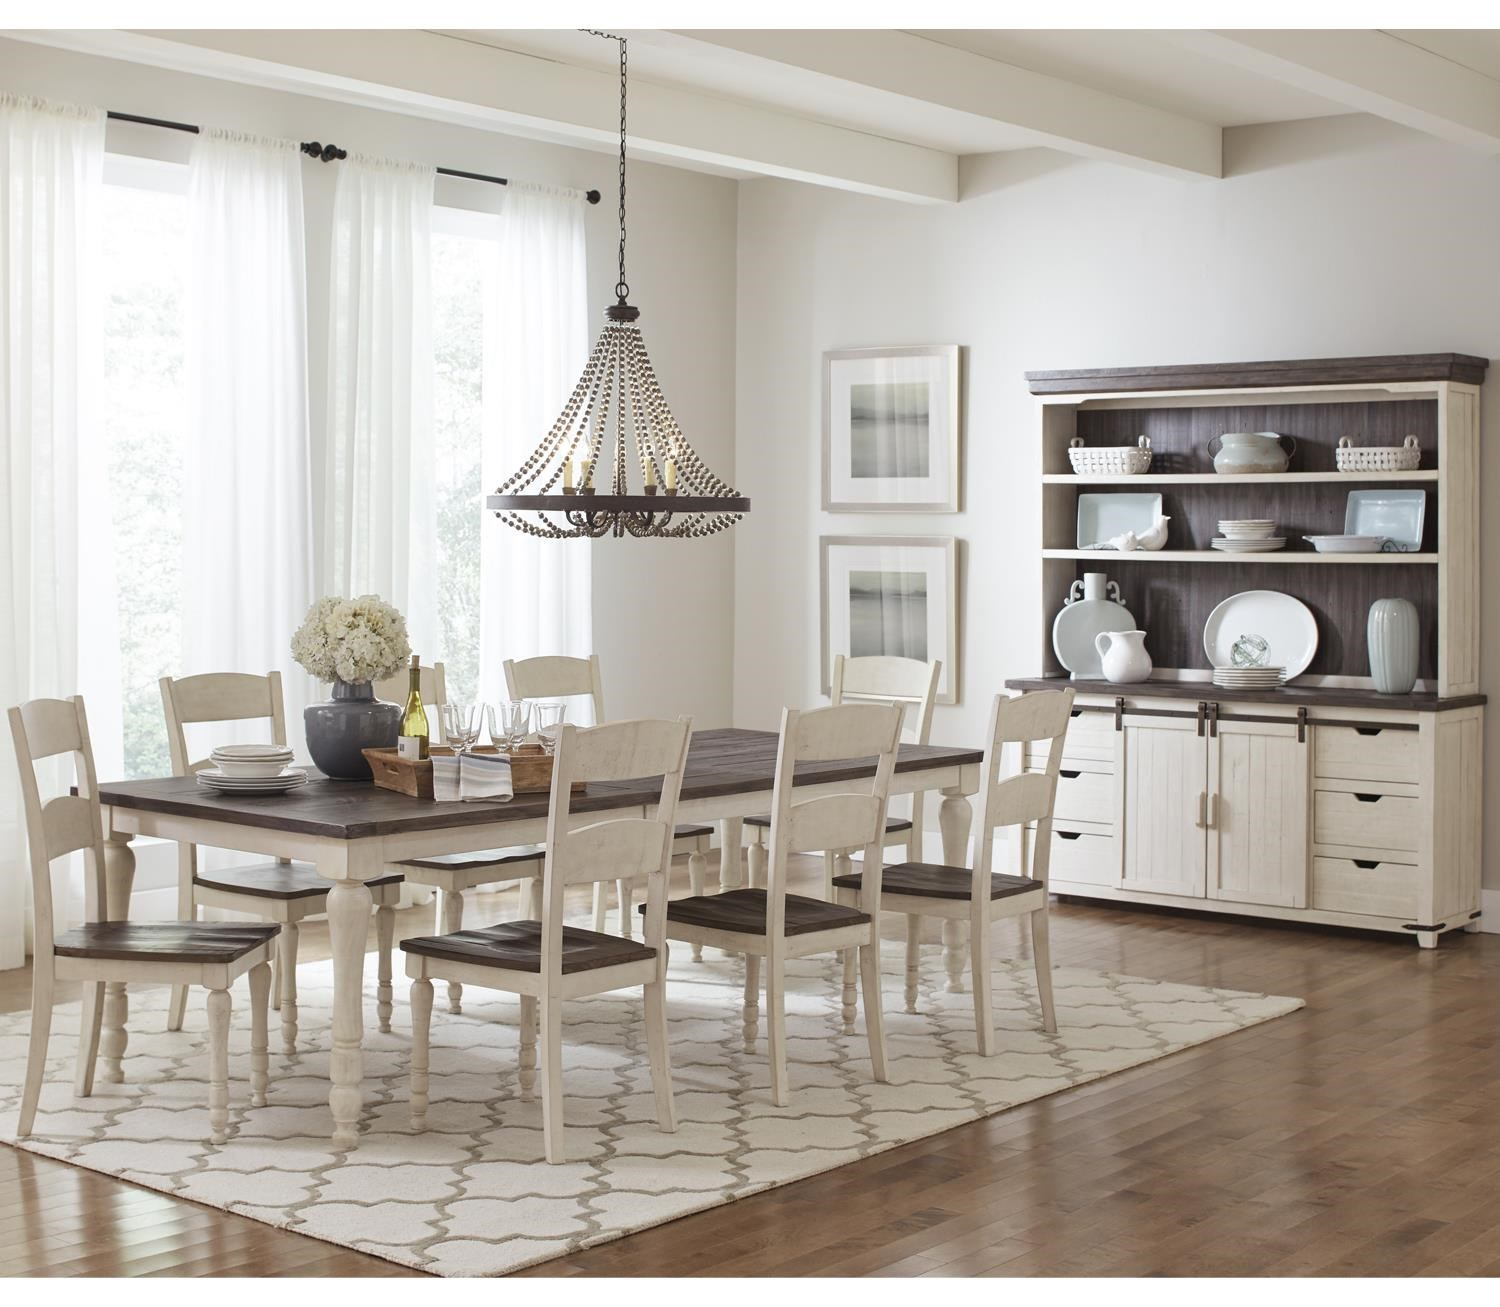 Stableview Stableview Dining Group by Belfort Essentials at Belfort Furniture